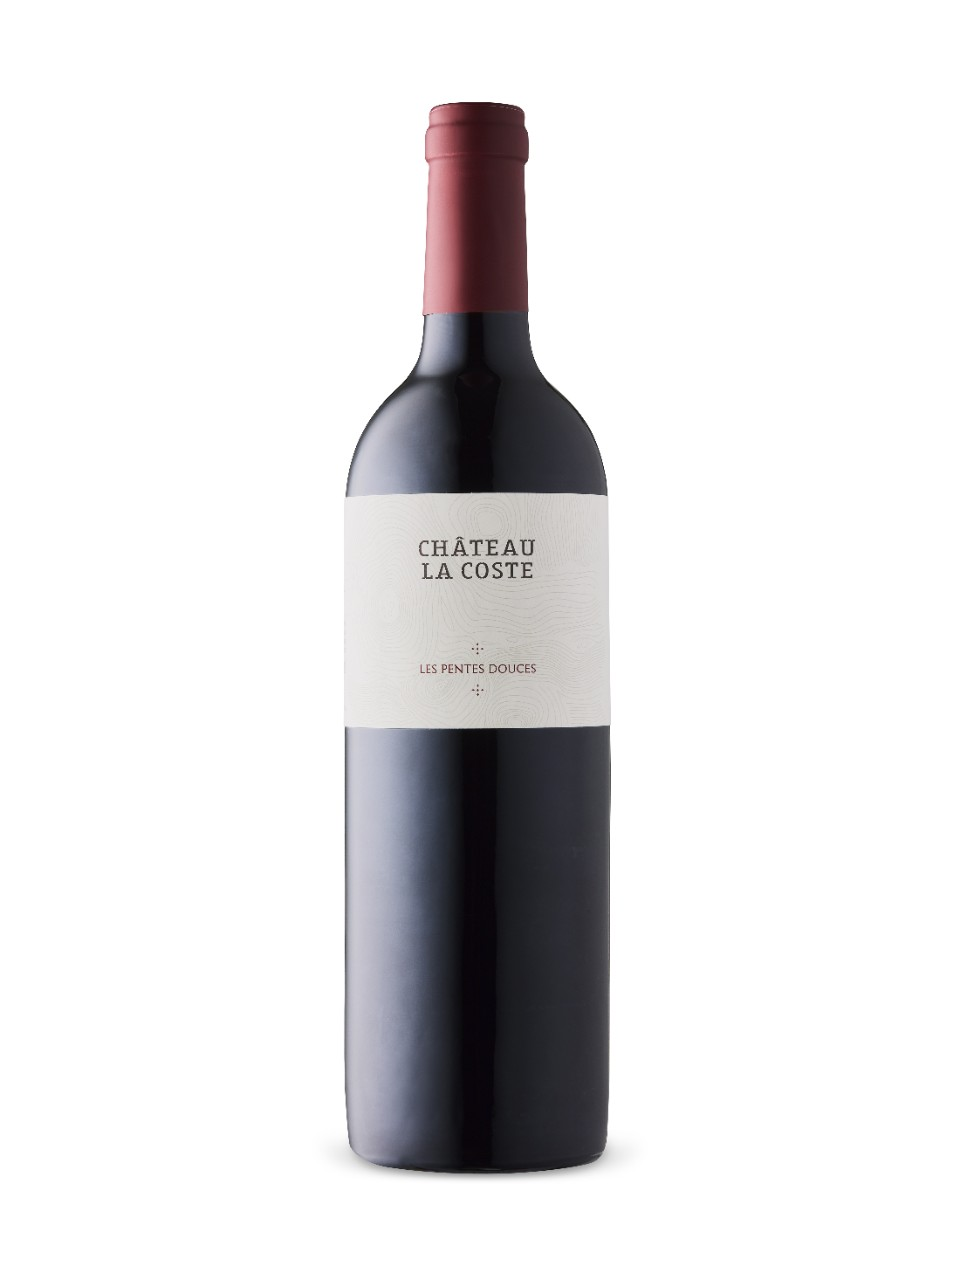 La Coste Les Pentes Douces Rouge Organic 2015 from LCBO